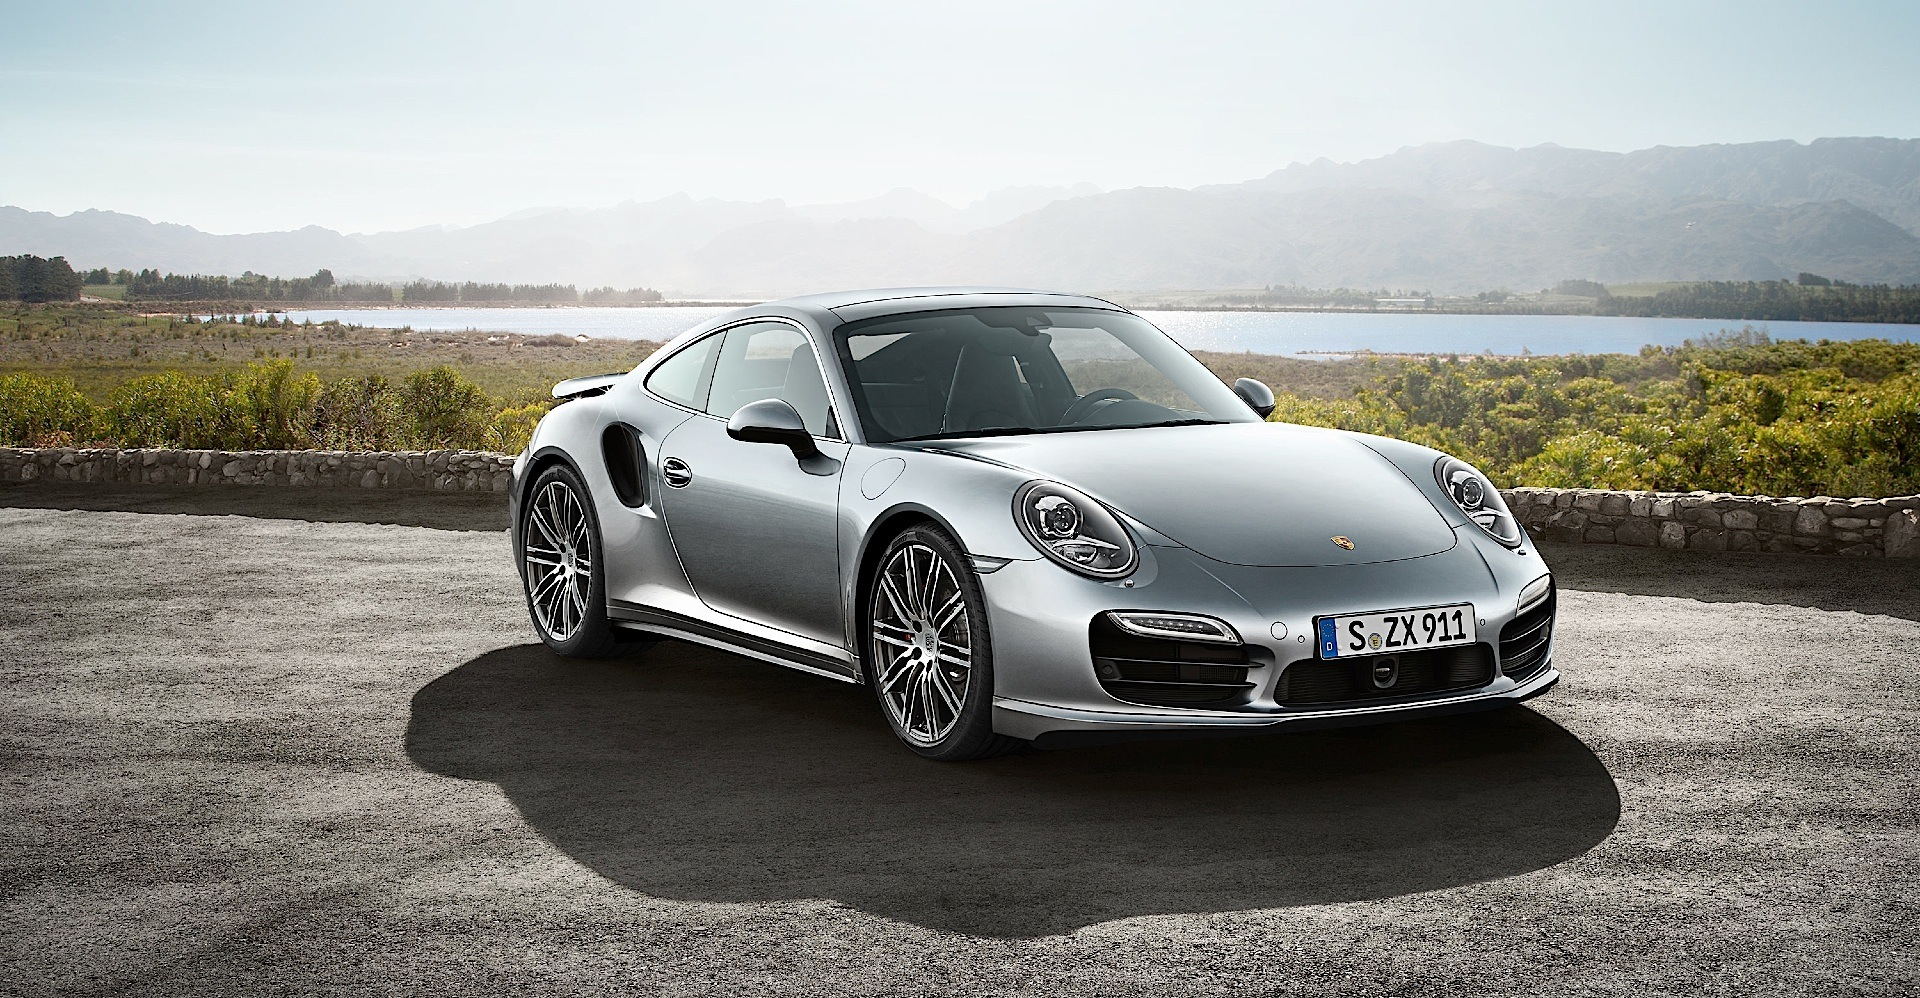 porsche 911 turbo 991 specs photos 2013 2014 2015 2016 autoevolution. Black Bedroom Furniture Sets. Home Design Ideas